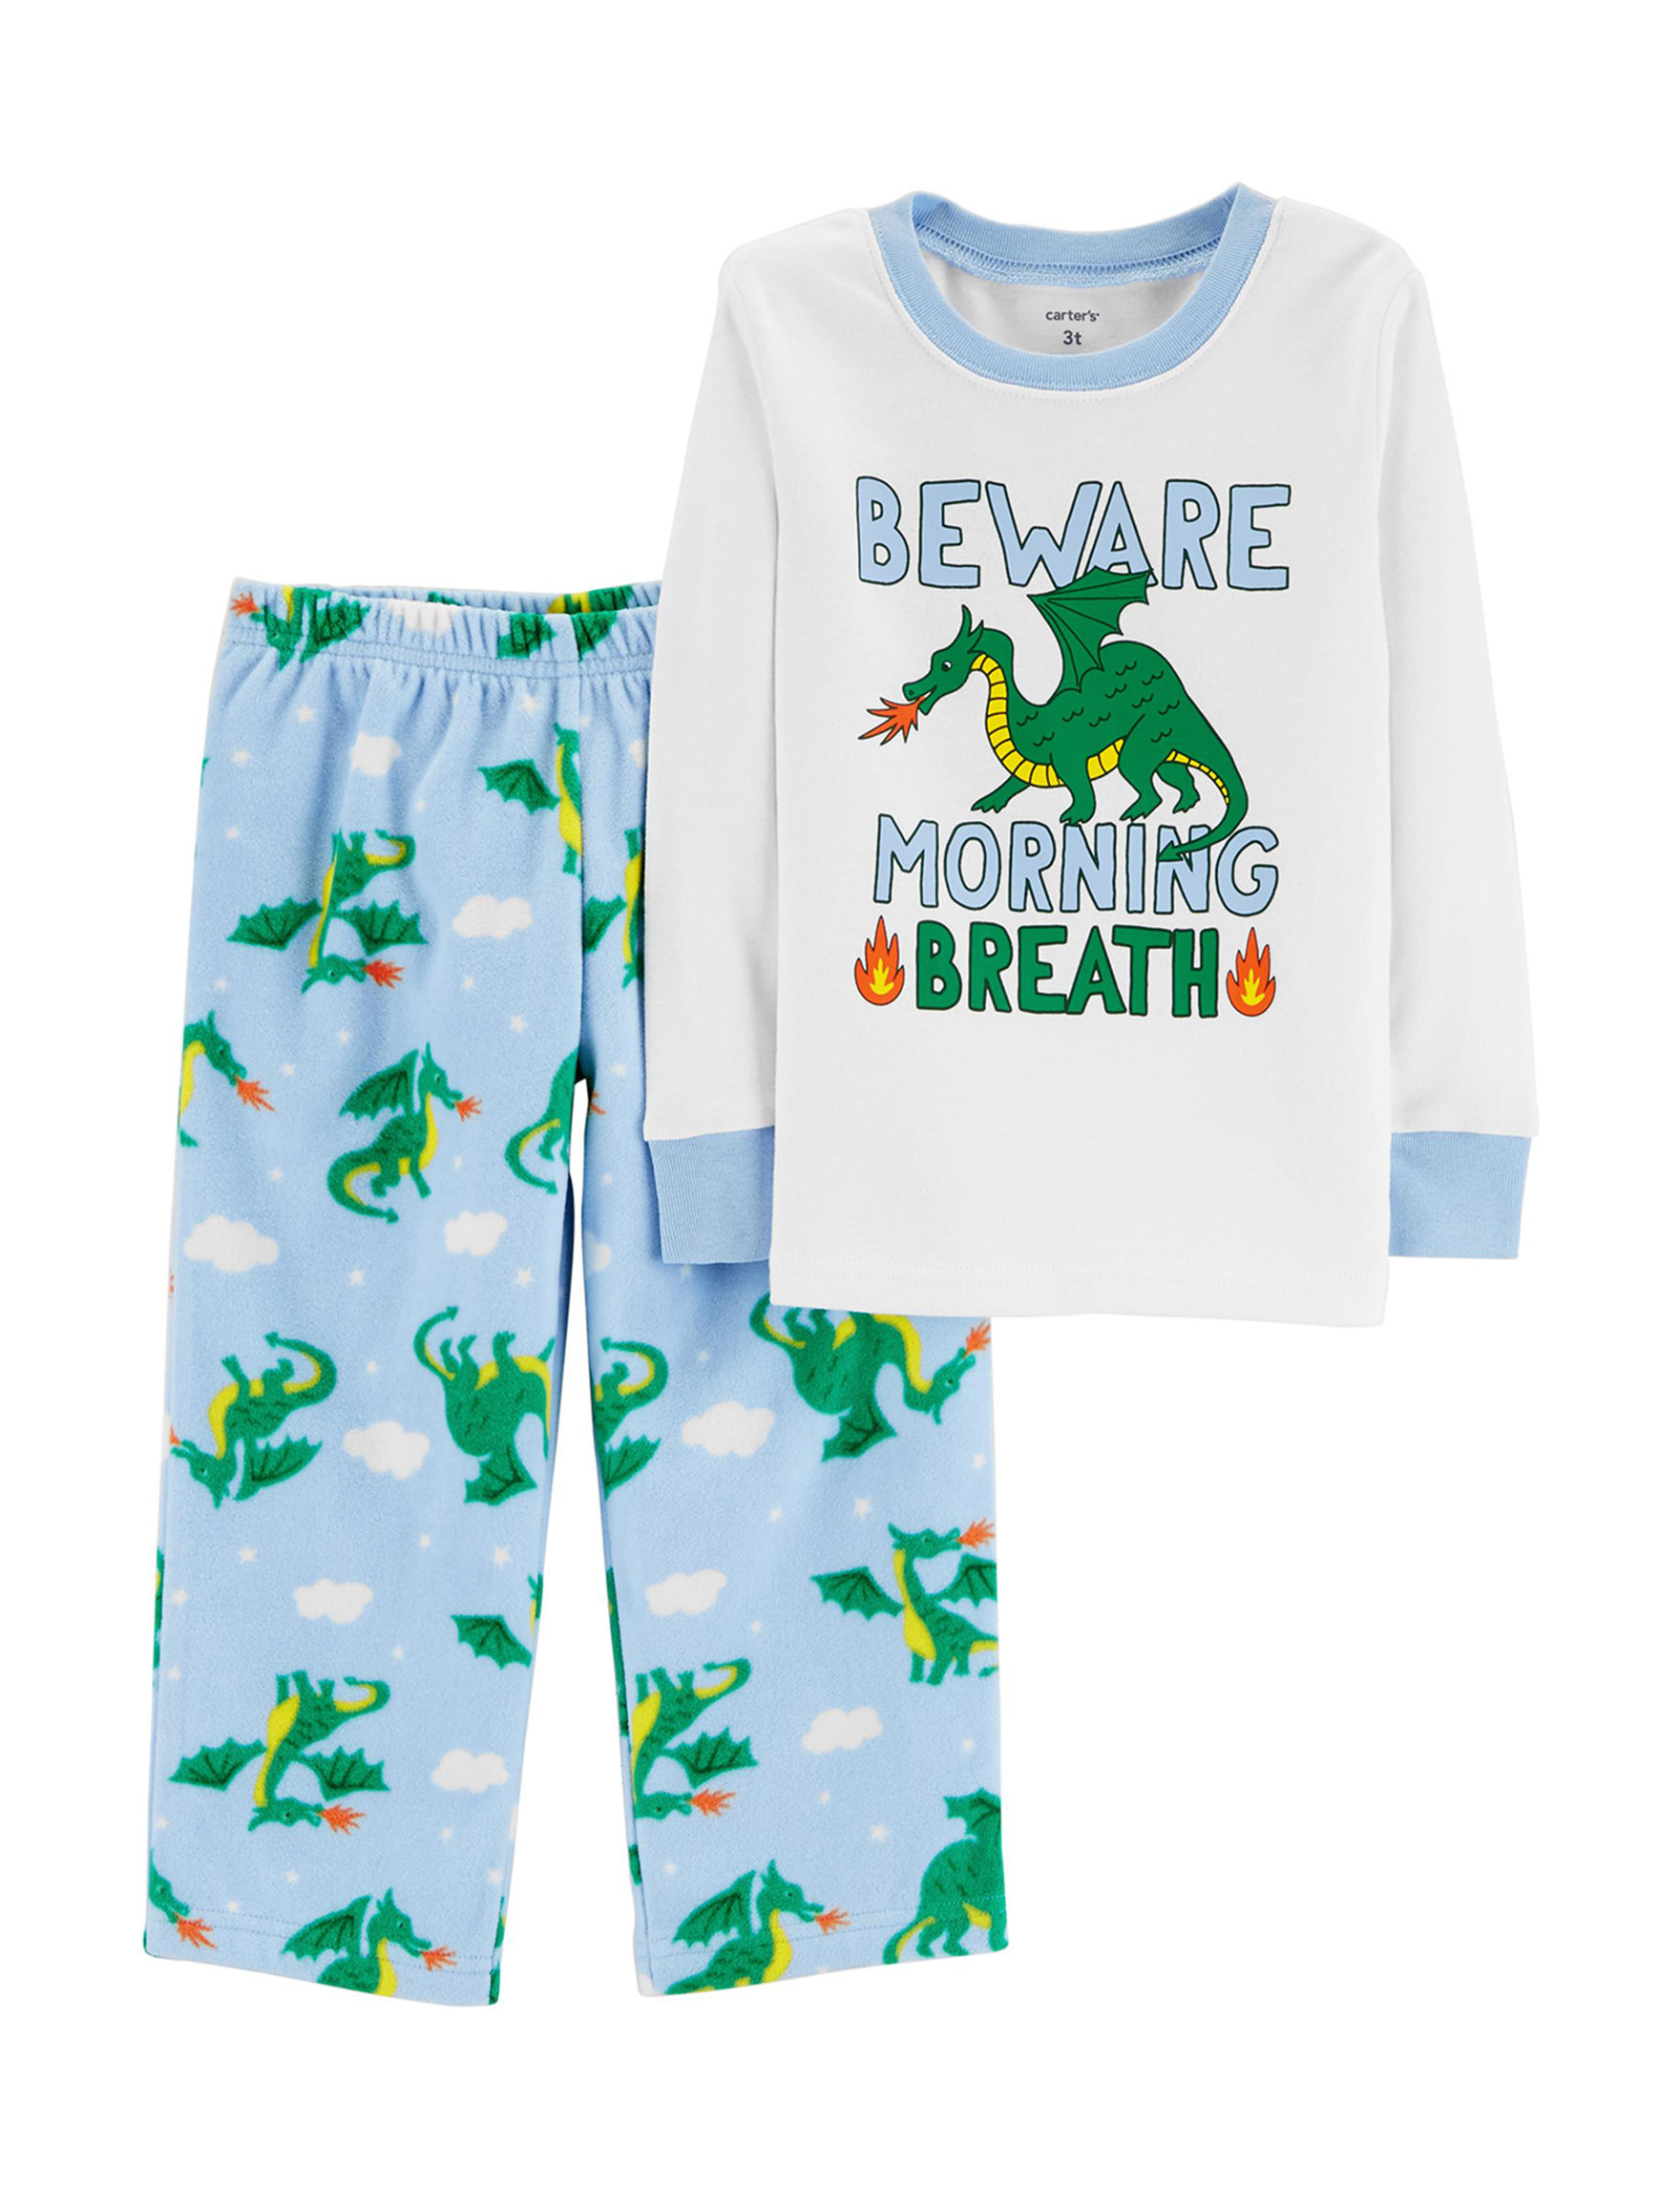 Carter's White / Blue Pajama Sets